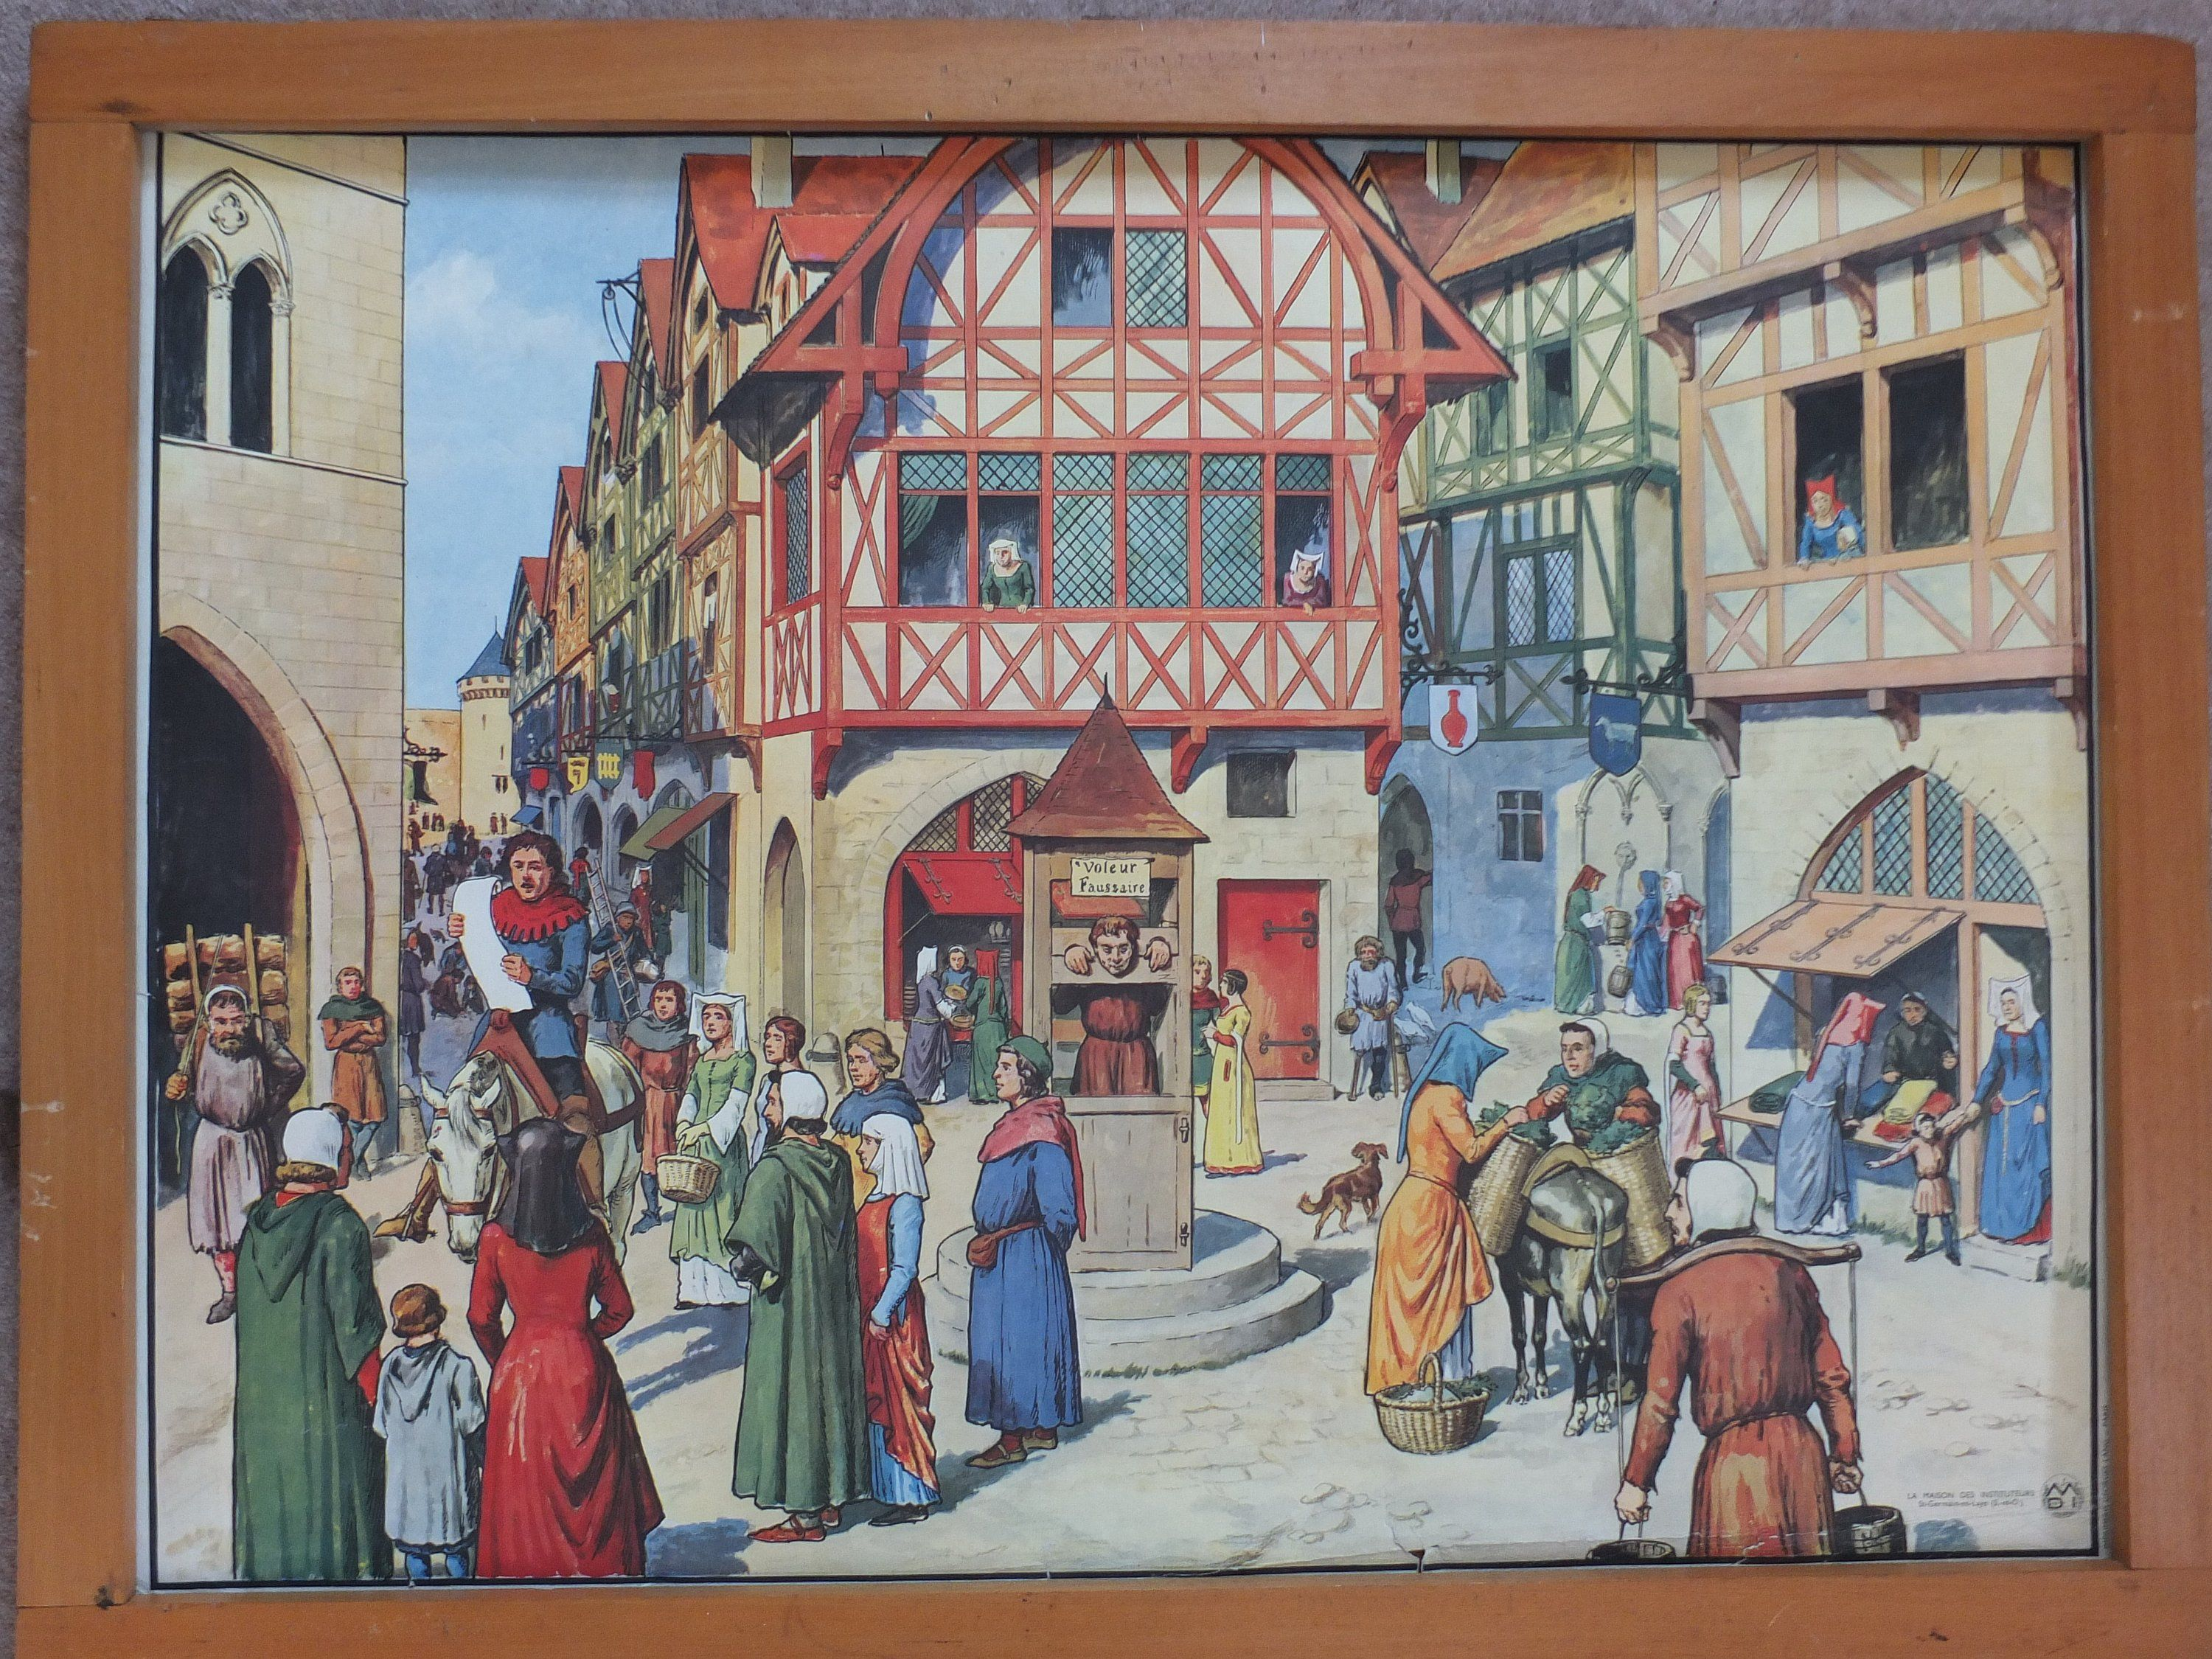 Vintage French School Poster Middle Ages City Life Build Etsy School Posters French School Medieval Paintings